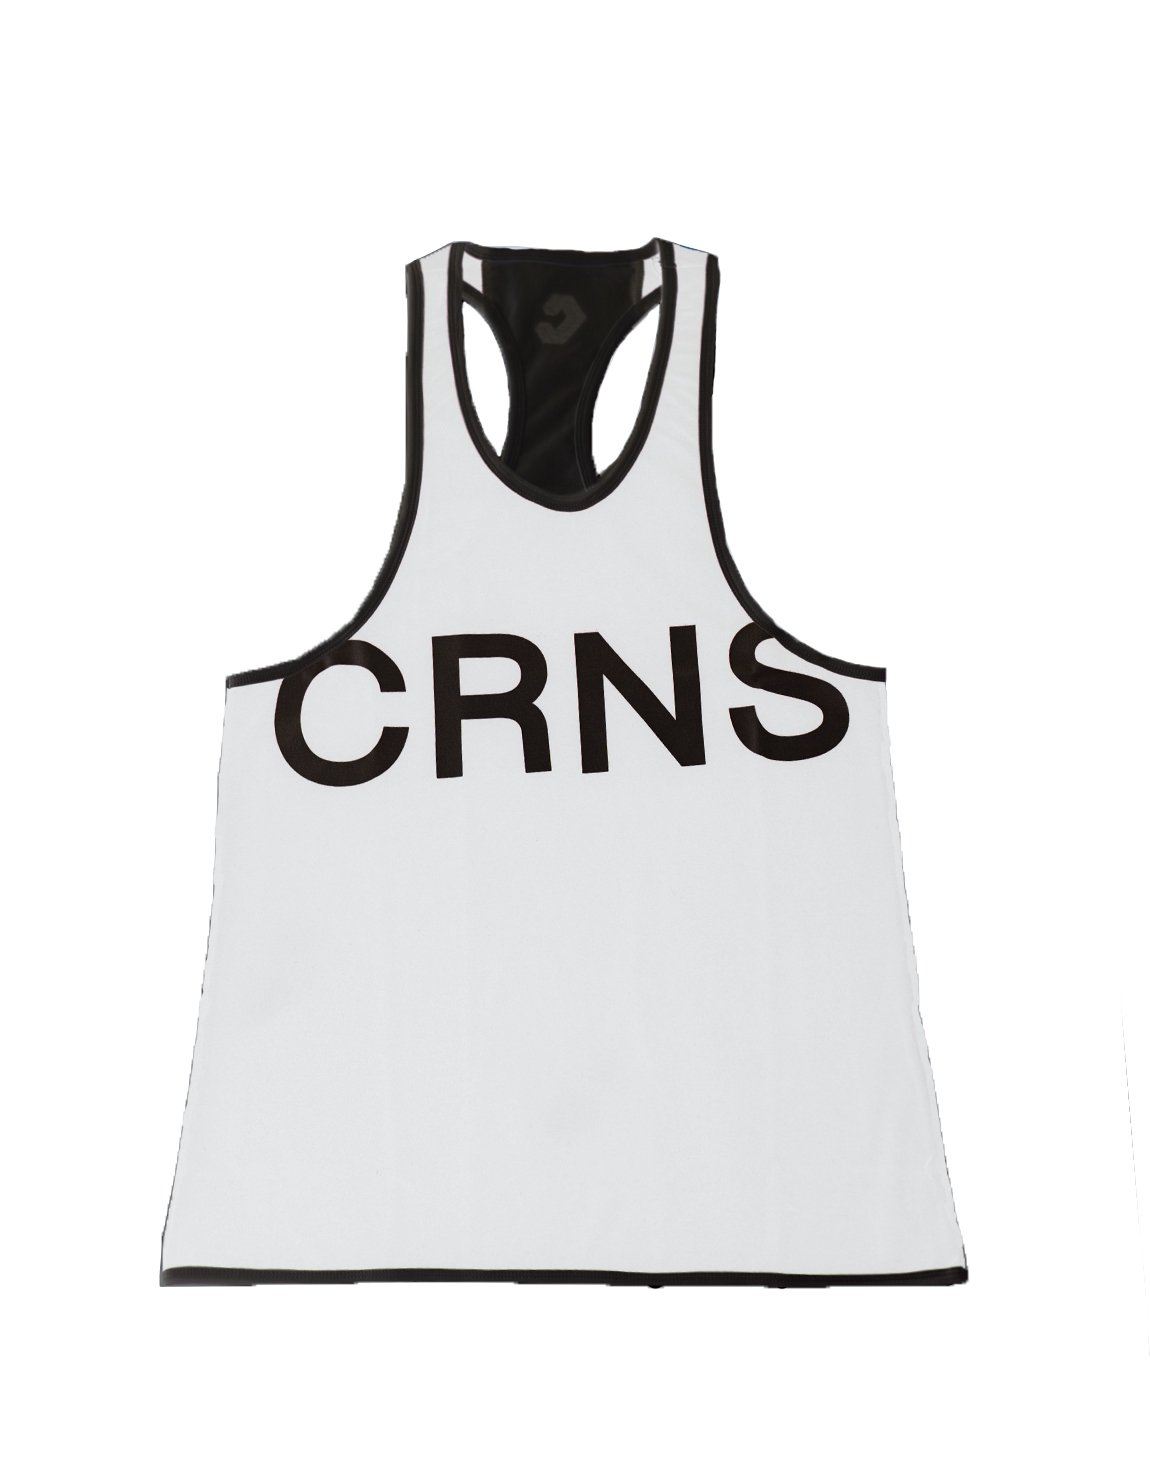 <img class='new_mark_img1' src='https://img.shop-pro.jp/img/new/icons55.gif' style='border:none;display:inline;margin:0px;padding:0px;width:auto;' />CRNS NEW BIG FONT LOGO TANK TOP 【WHITE】